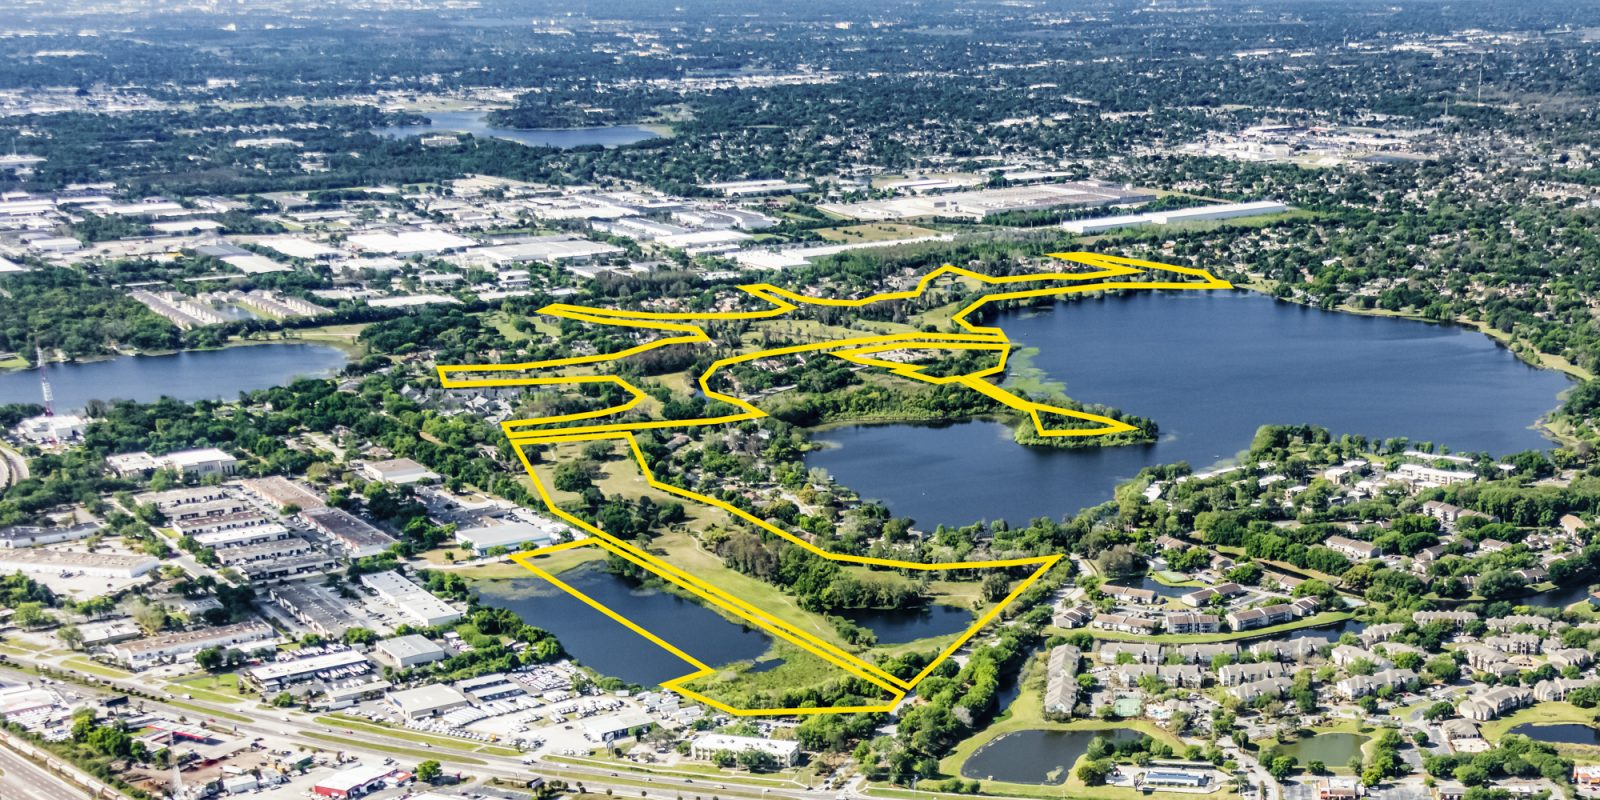 An aerial view of Lake Orlando vacant development parcels.